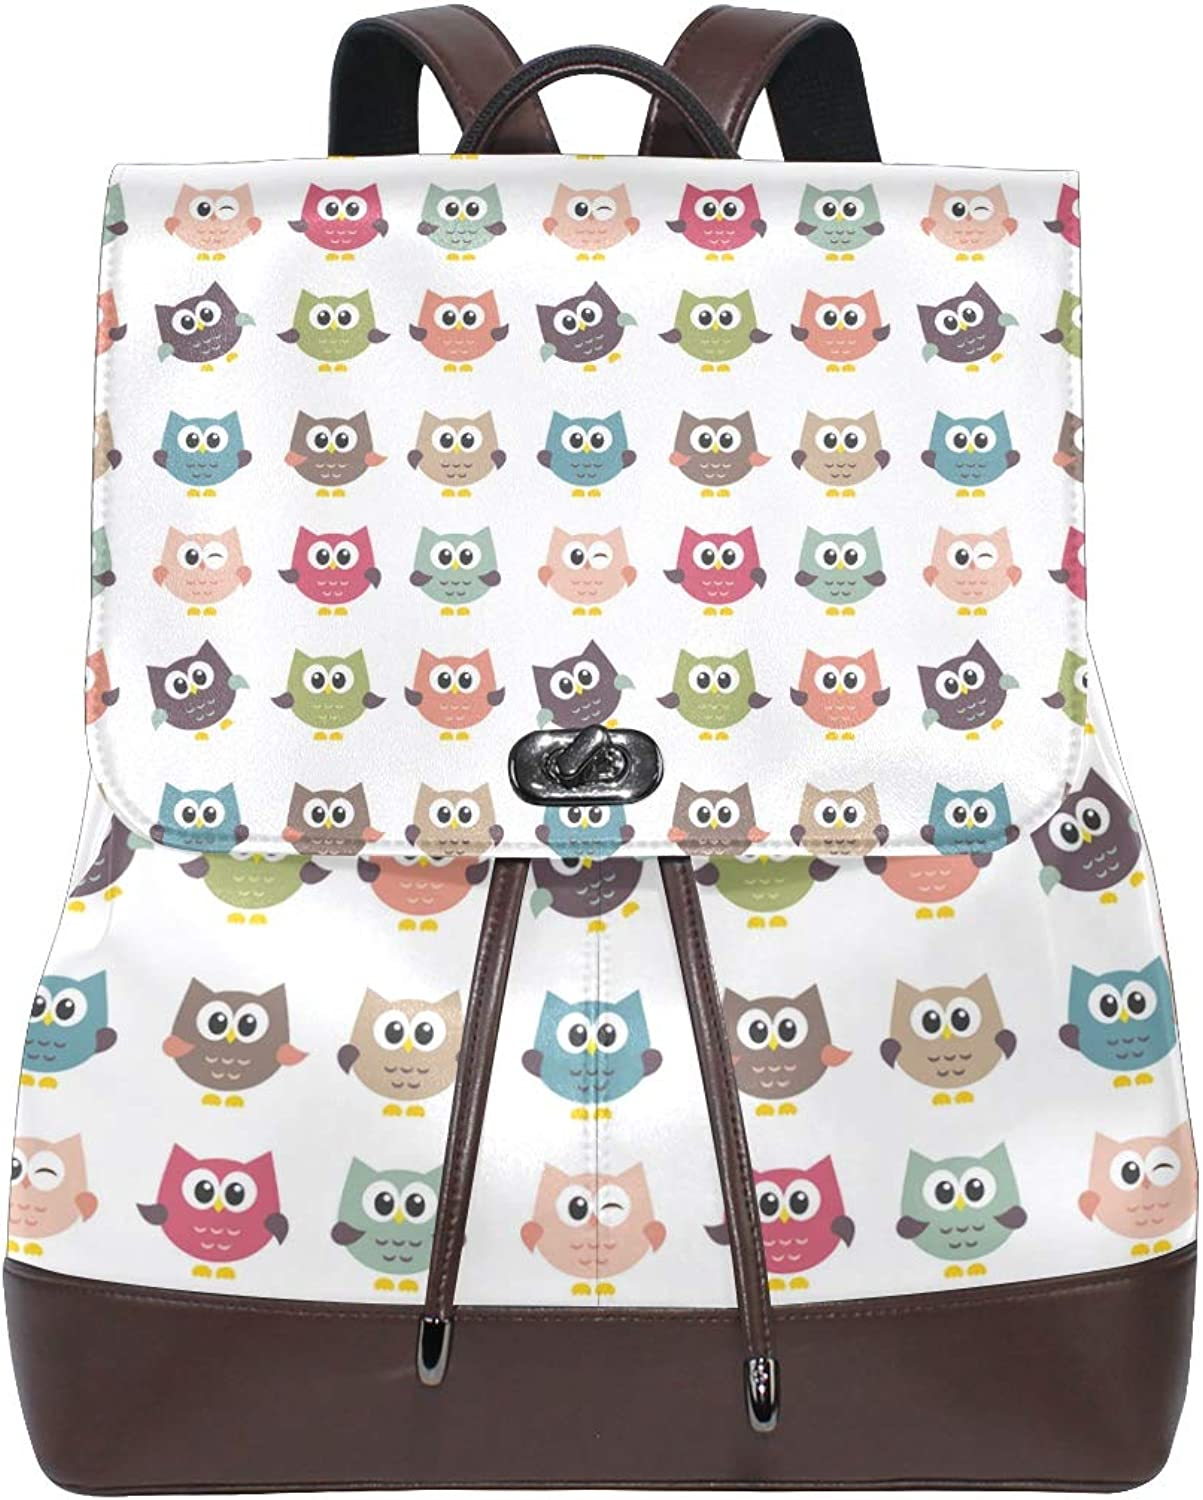 Leather Owls On White Background Backpack Daypack Bag Women